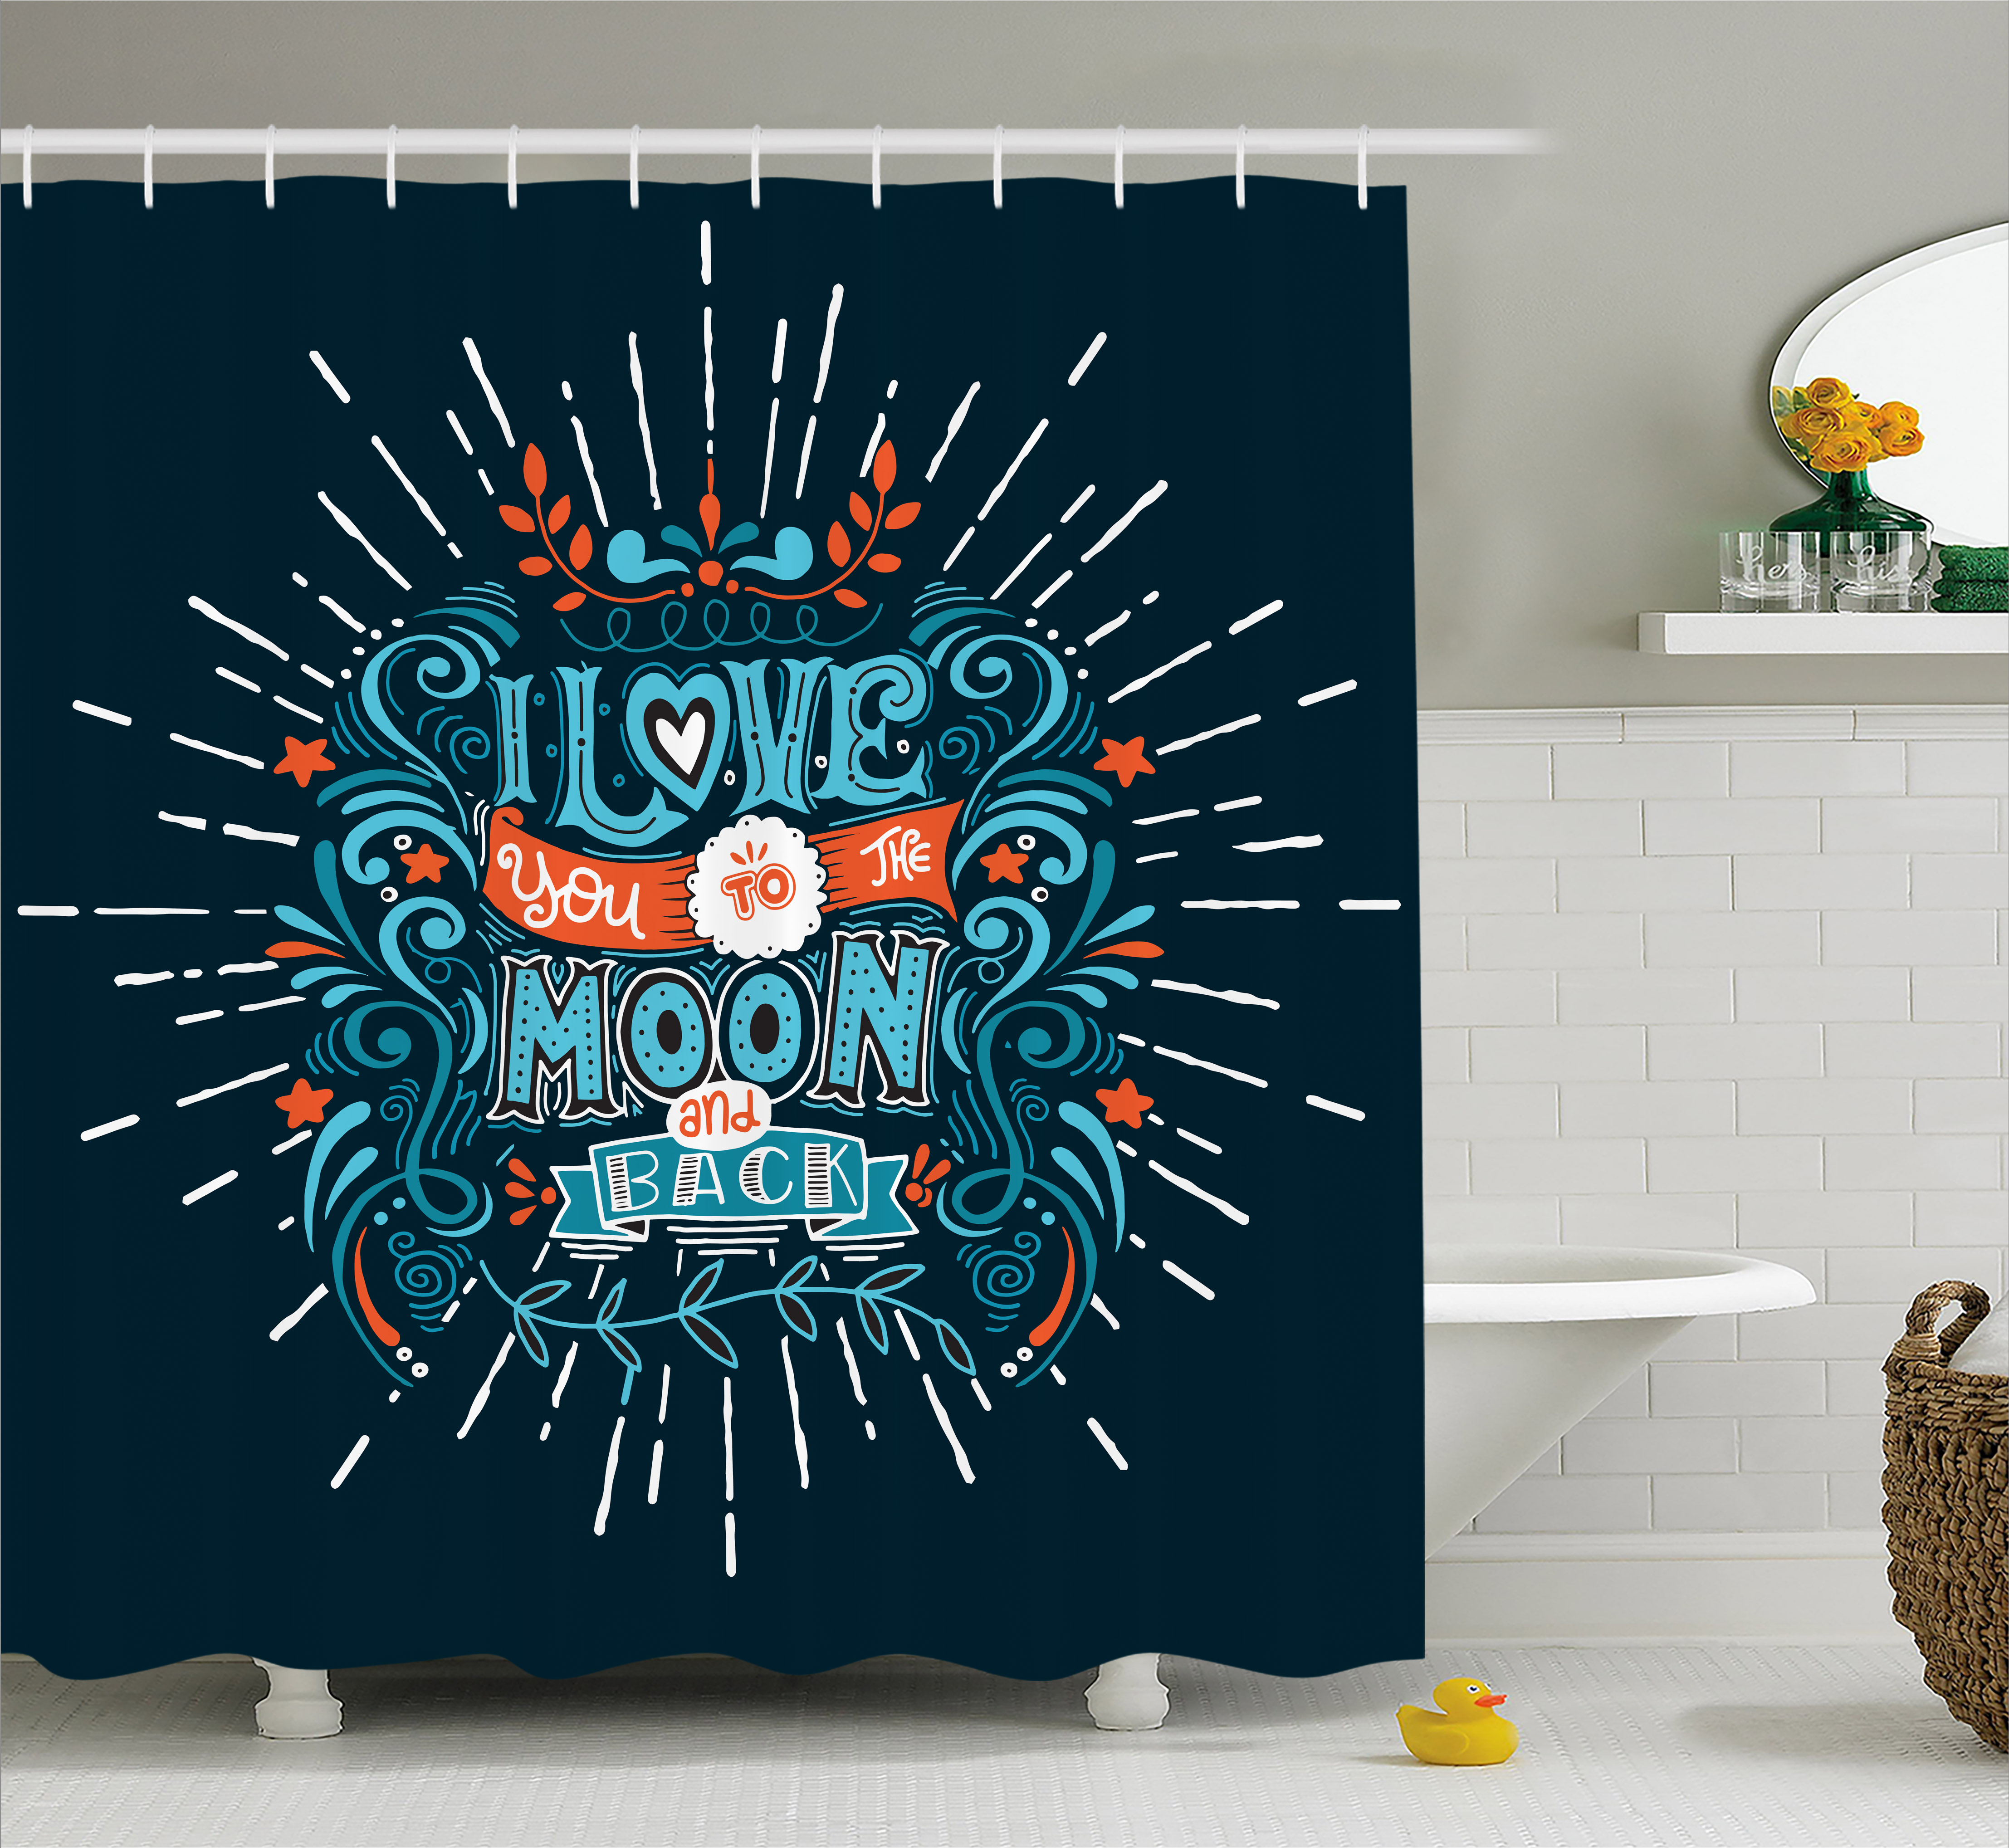 I Love You Shower Curtain, Ethnic Stylized Amusement Swirls Floral Bloom Branches Attraction Friends, Fabric Bathroom Set with Hooks, 69W X 70L Inches, Blue Red White, by Ambesonne